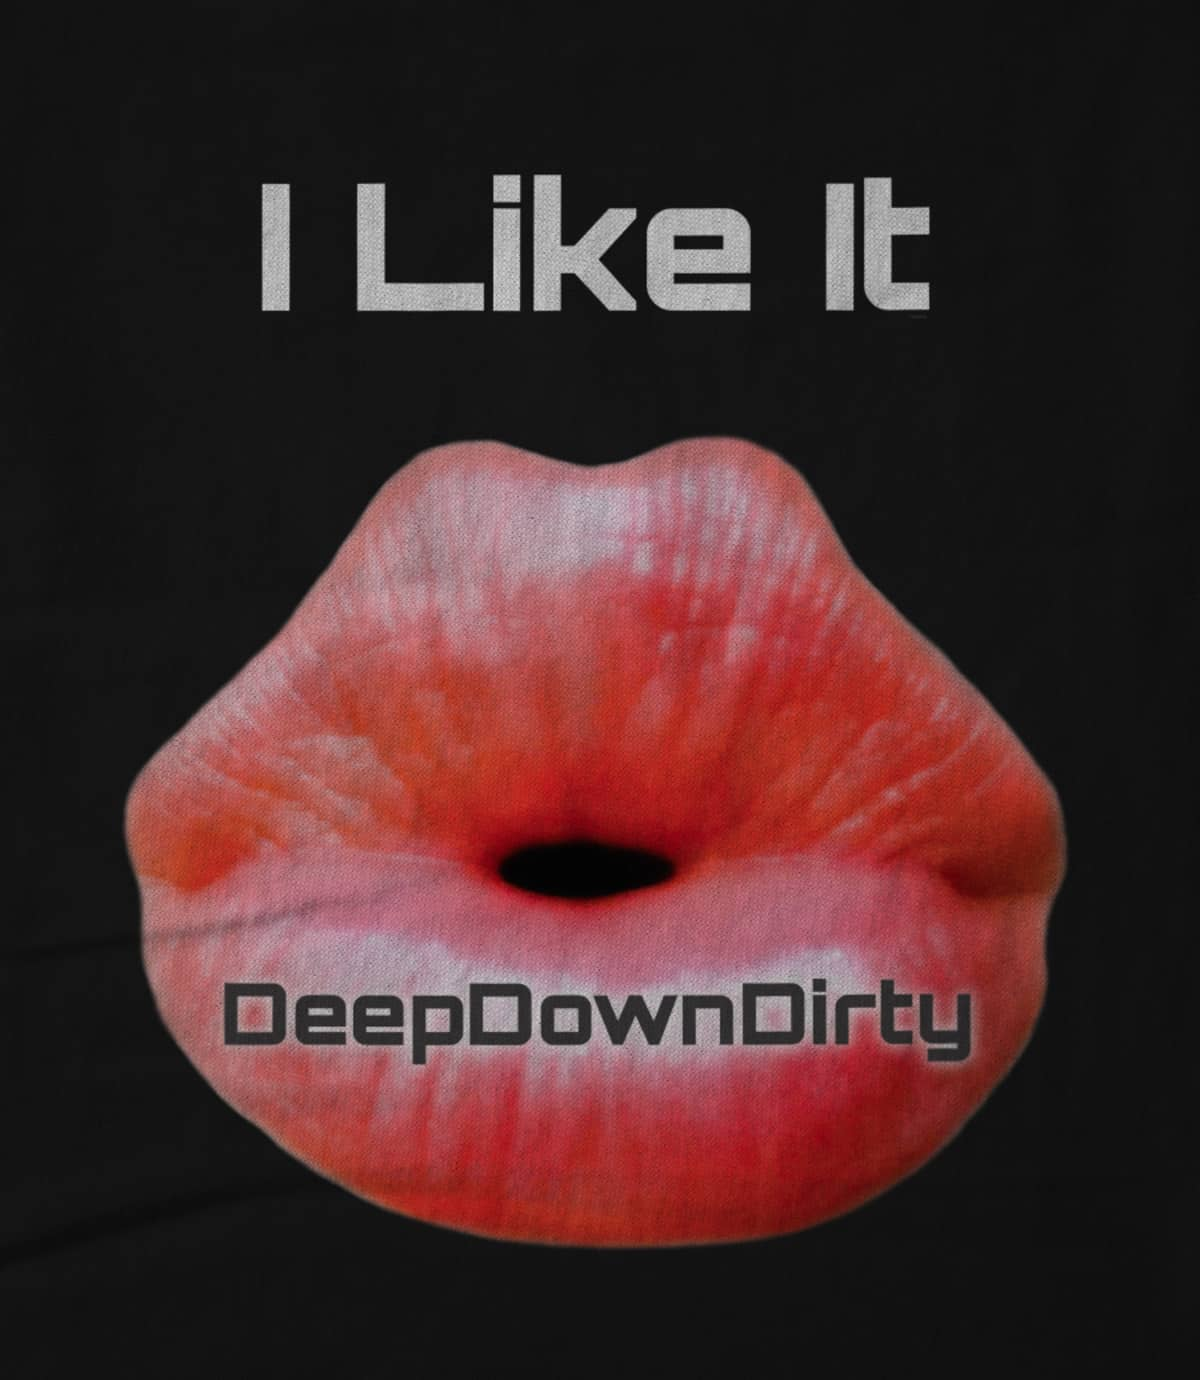 Deepdowndirty record label i like it signature 1495840286